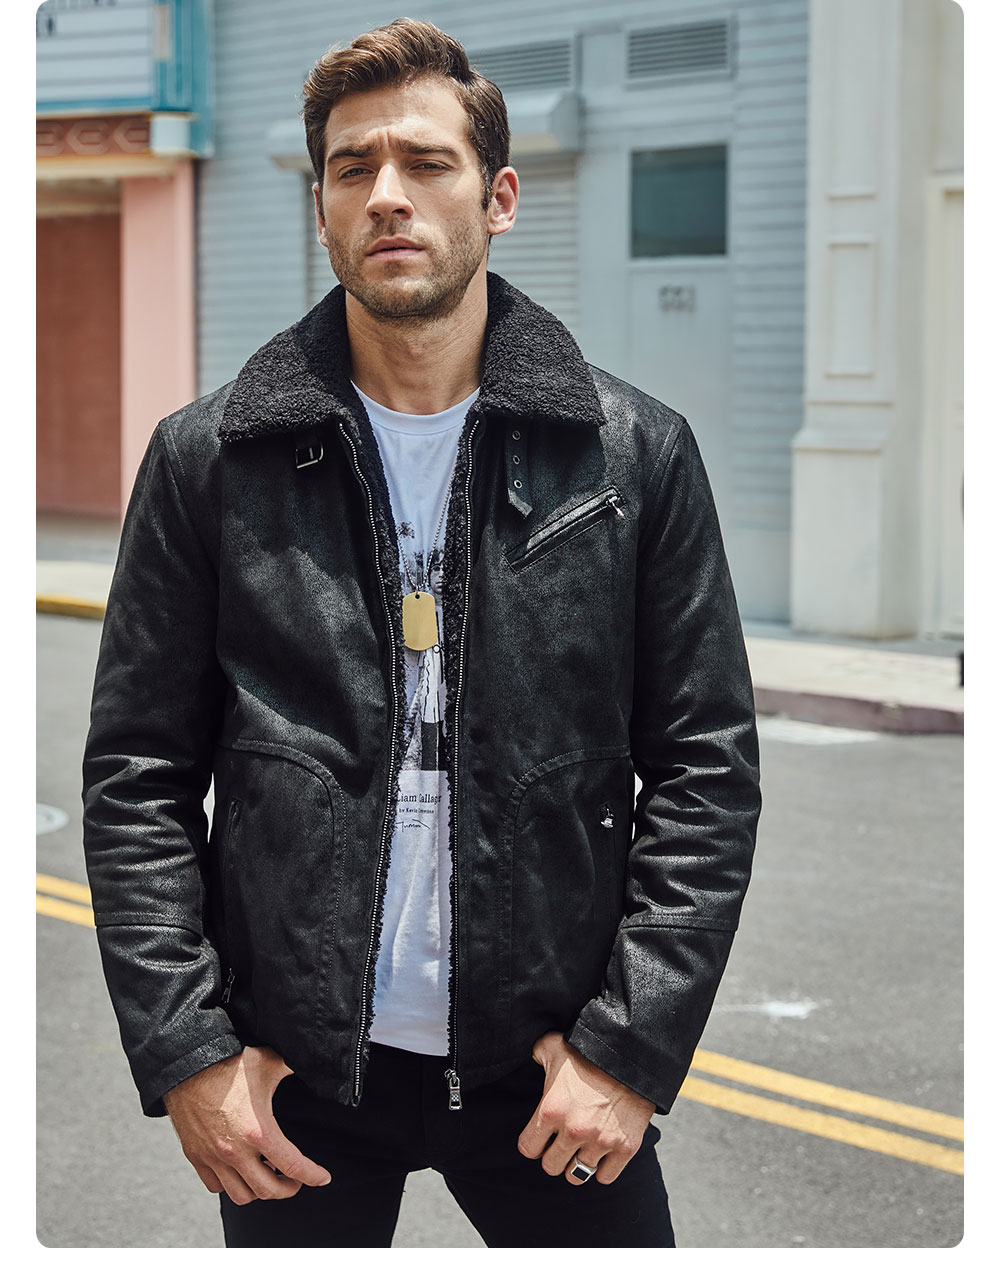 H16a09d7fe33c4cb1bd78c943a5c2e457R FLAVOR New Men's Genuine Leather Motorcycle Jacket Pigskin with Faux Shearling Real Leather Jacket Bomber Coat Men